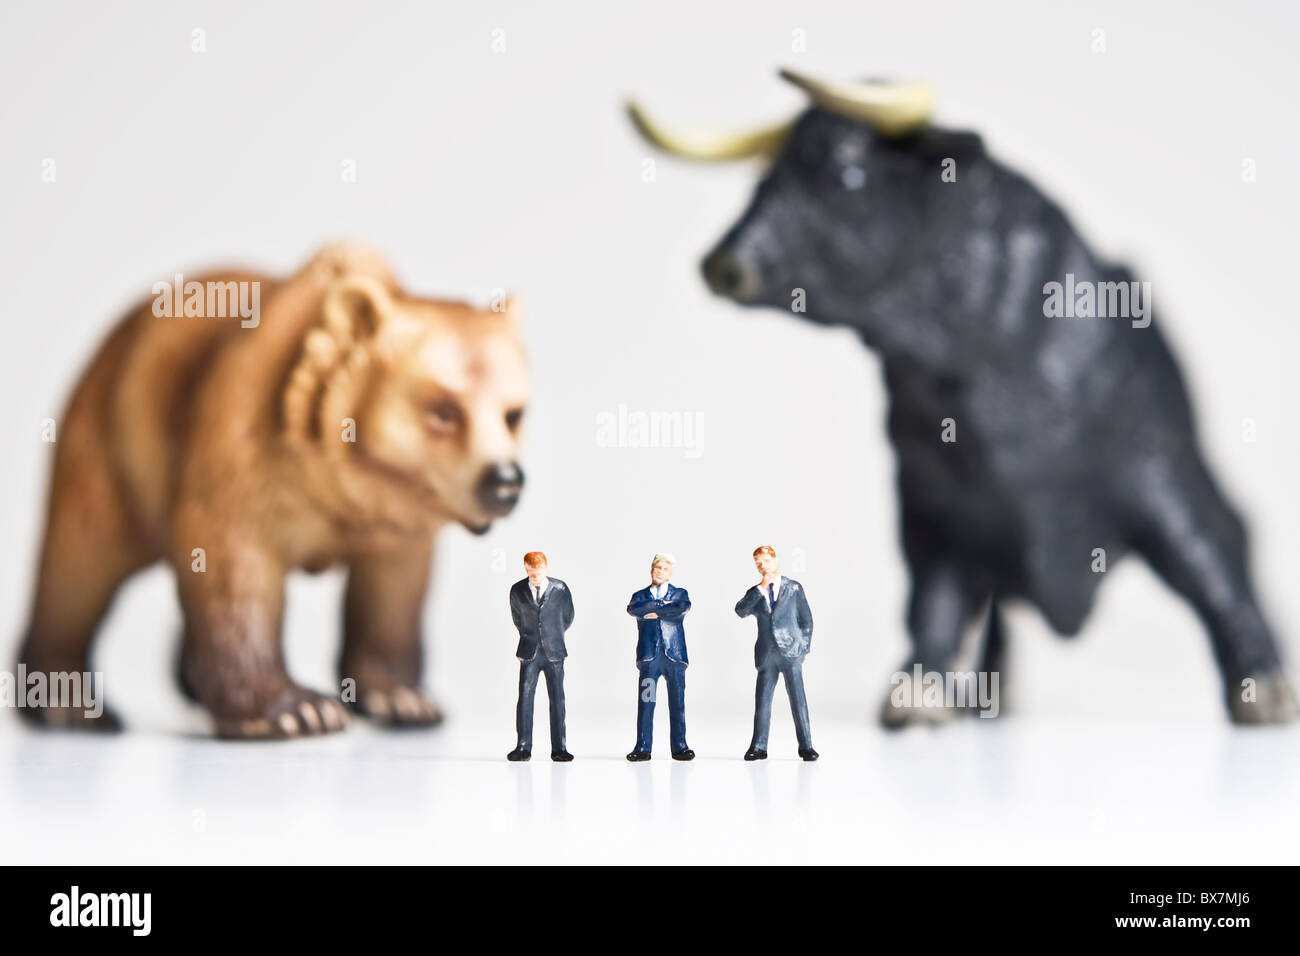 Business figurines placed with bull and bear figurines. - Stock Image